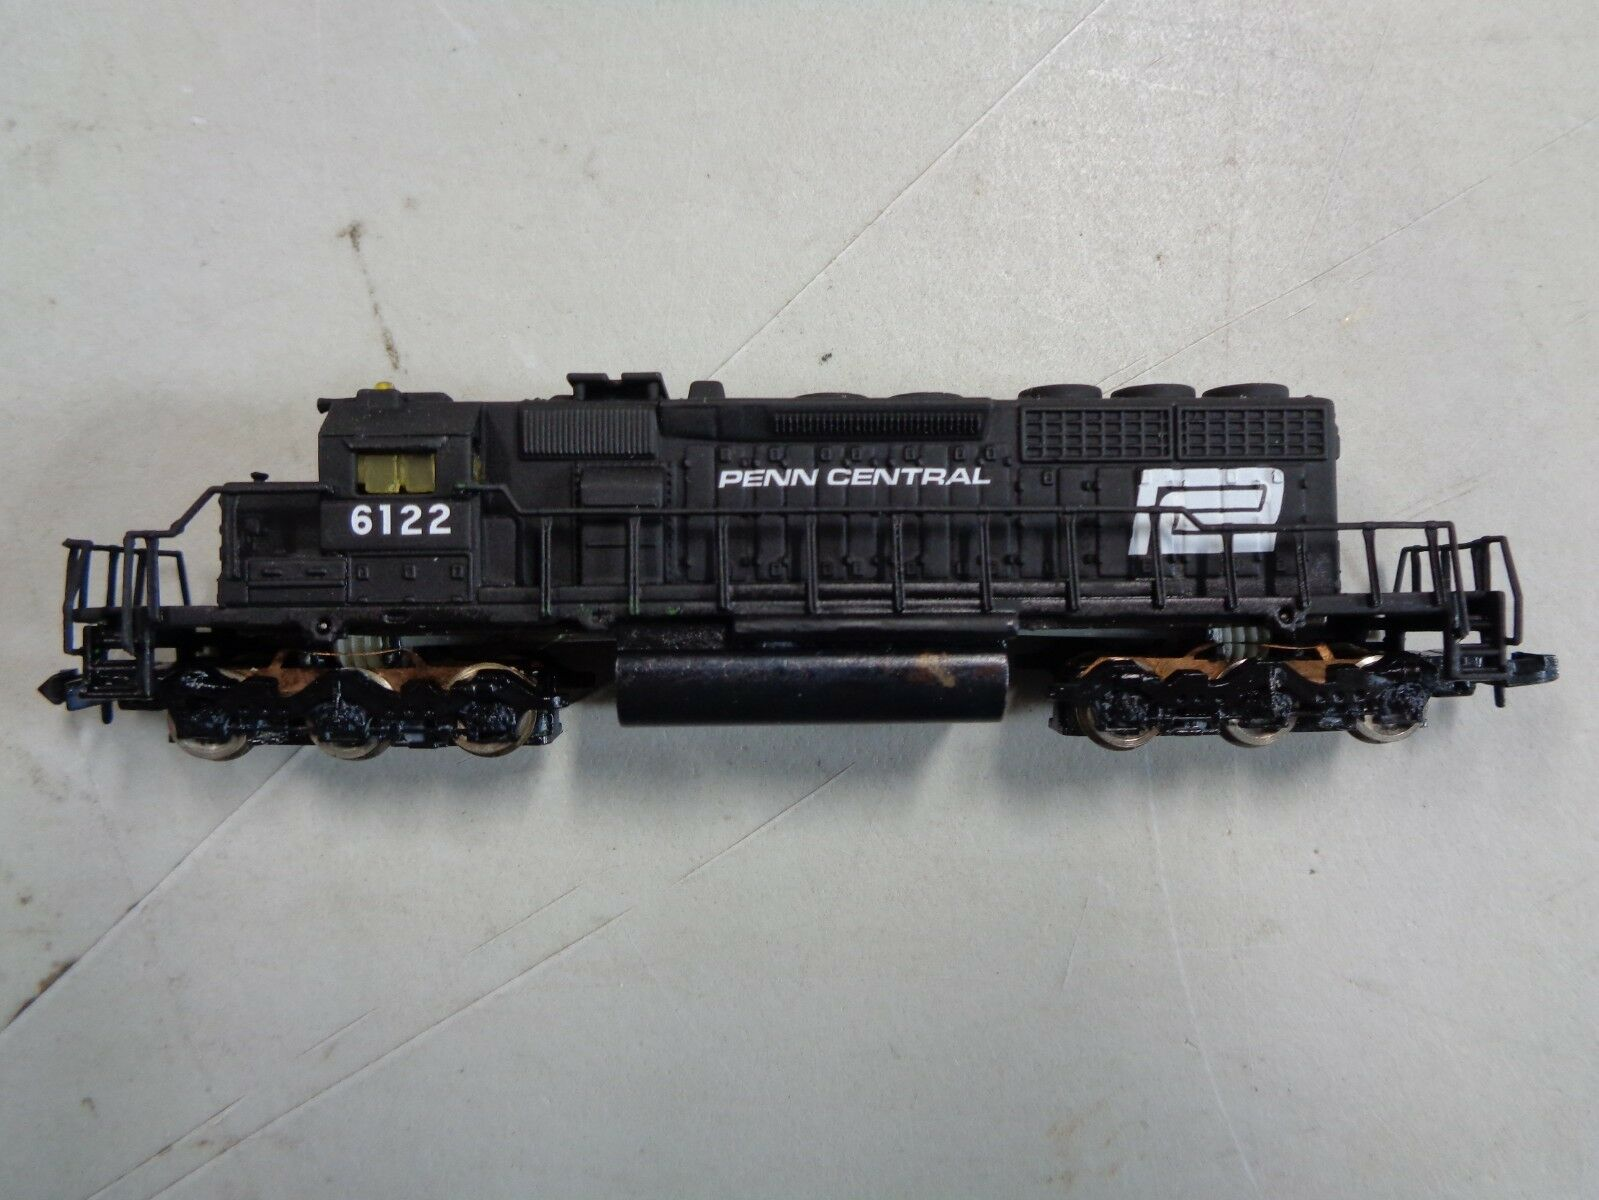 Penn Central 6122 Locomotive N Scale